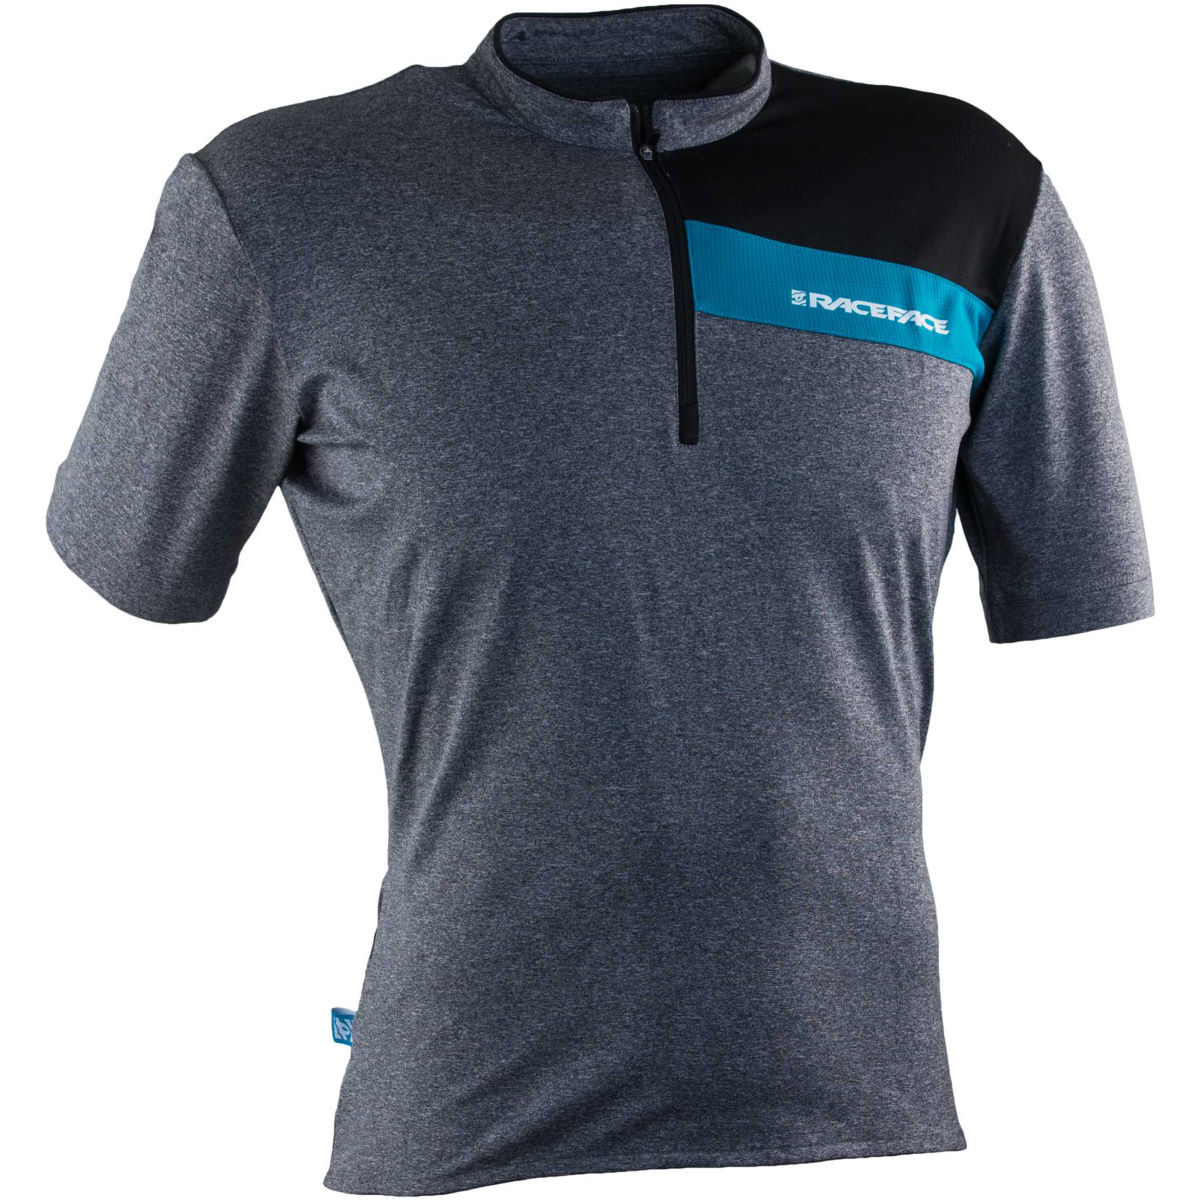 Maillot Race Face Podium (2015) - S Charcoal - Turquoise